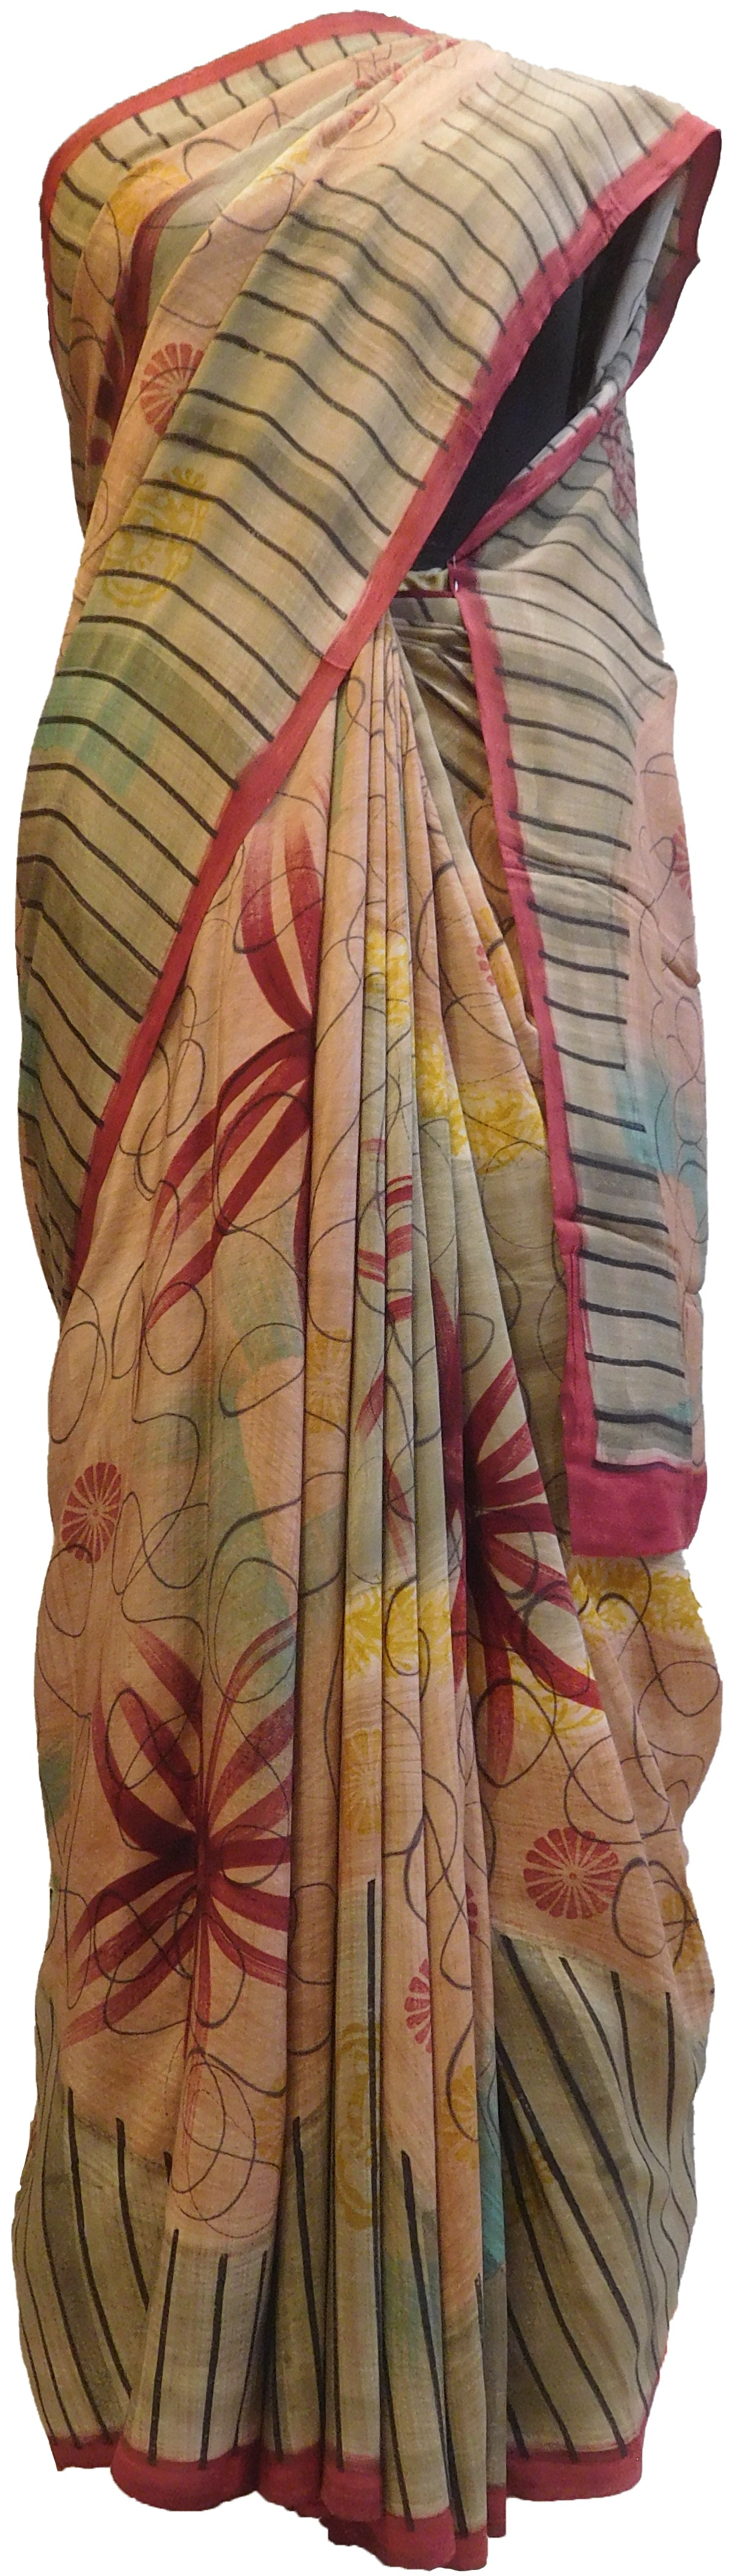 Multicolor Designer Wedding Partywear Pure Crepe Hand Brush Reprinted Kolkata Saree Sari RP100